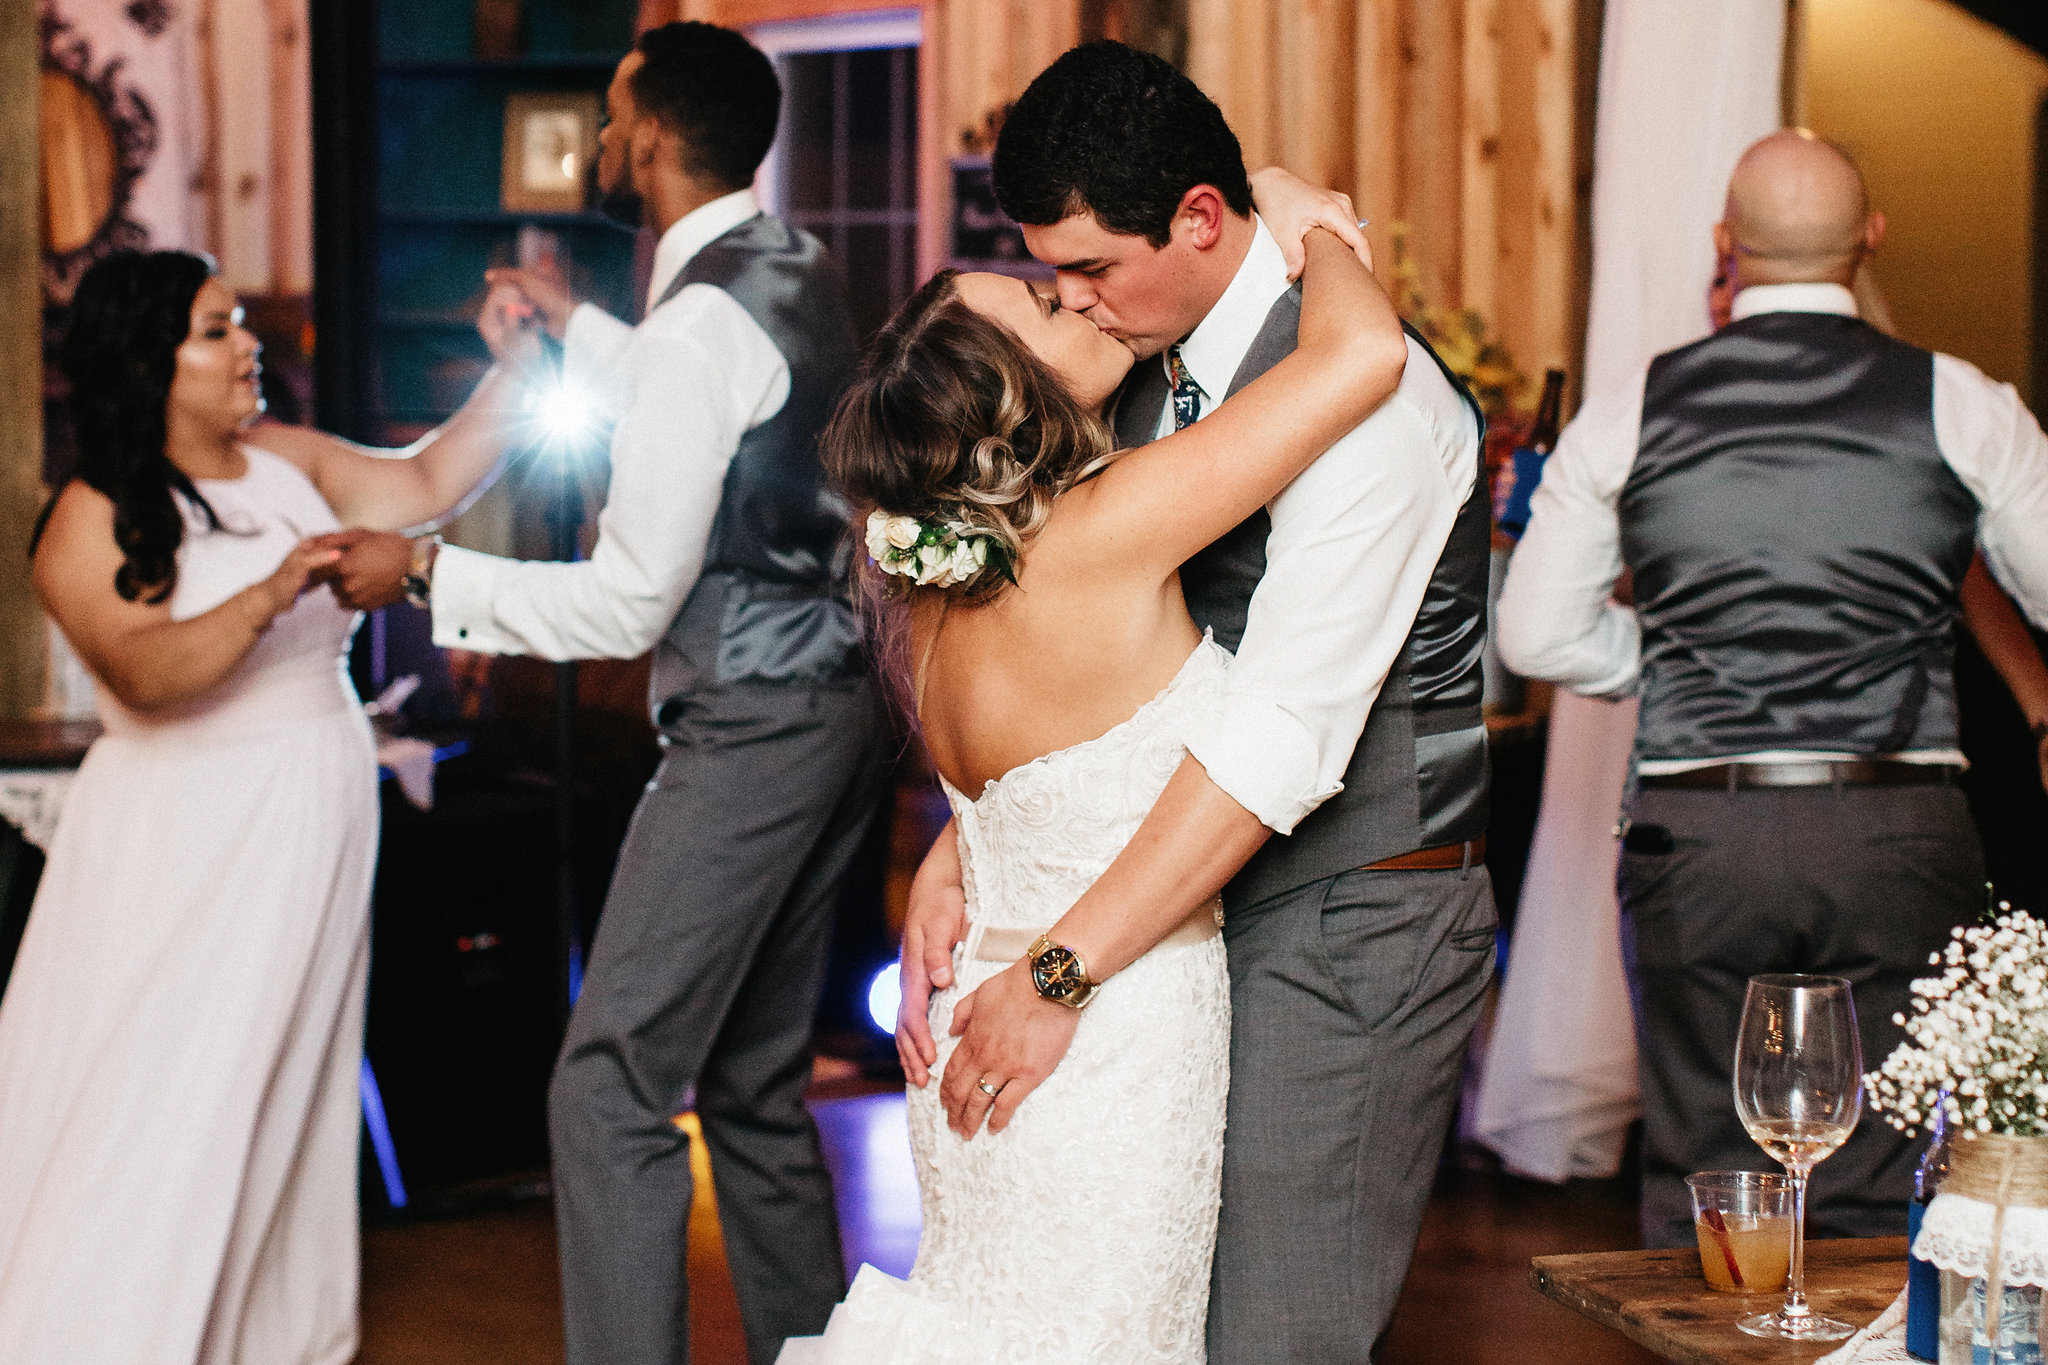 Ashley&NathanMarried2017-11-10at19.26.50PM55.jpg